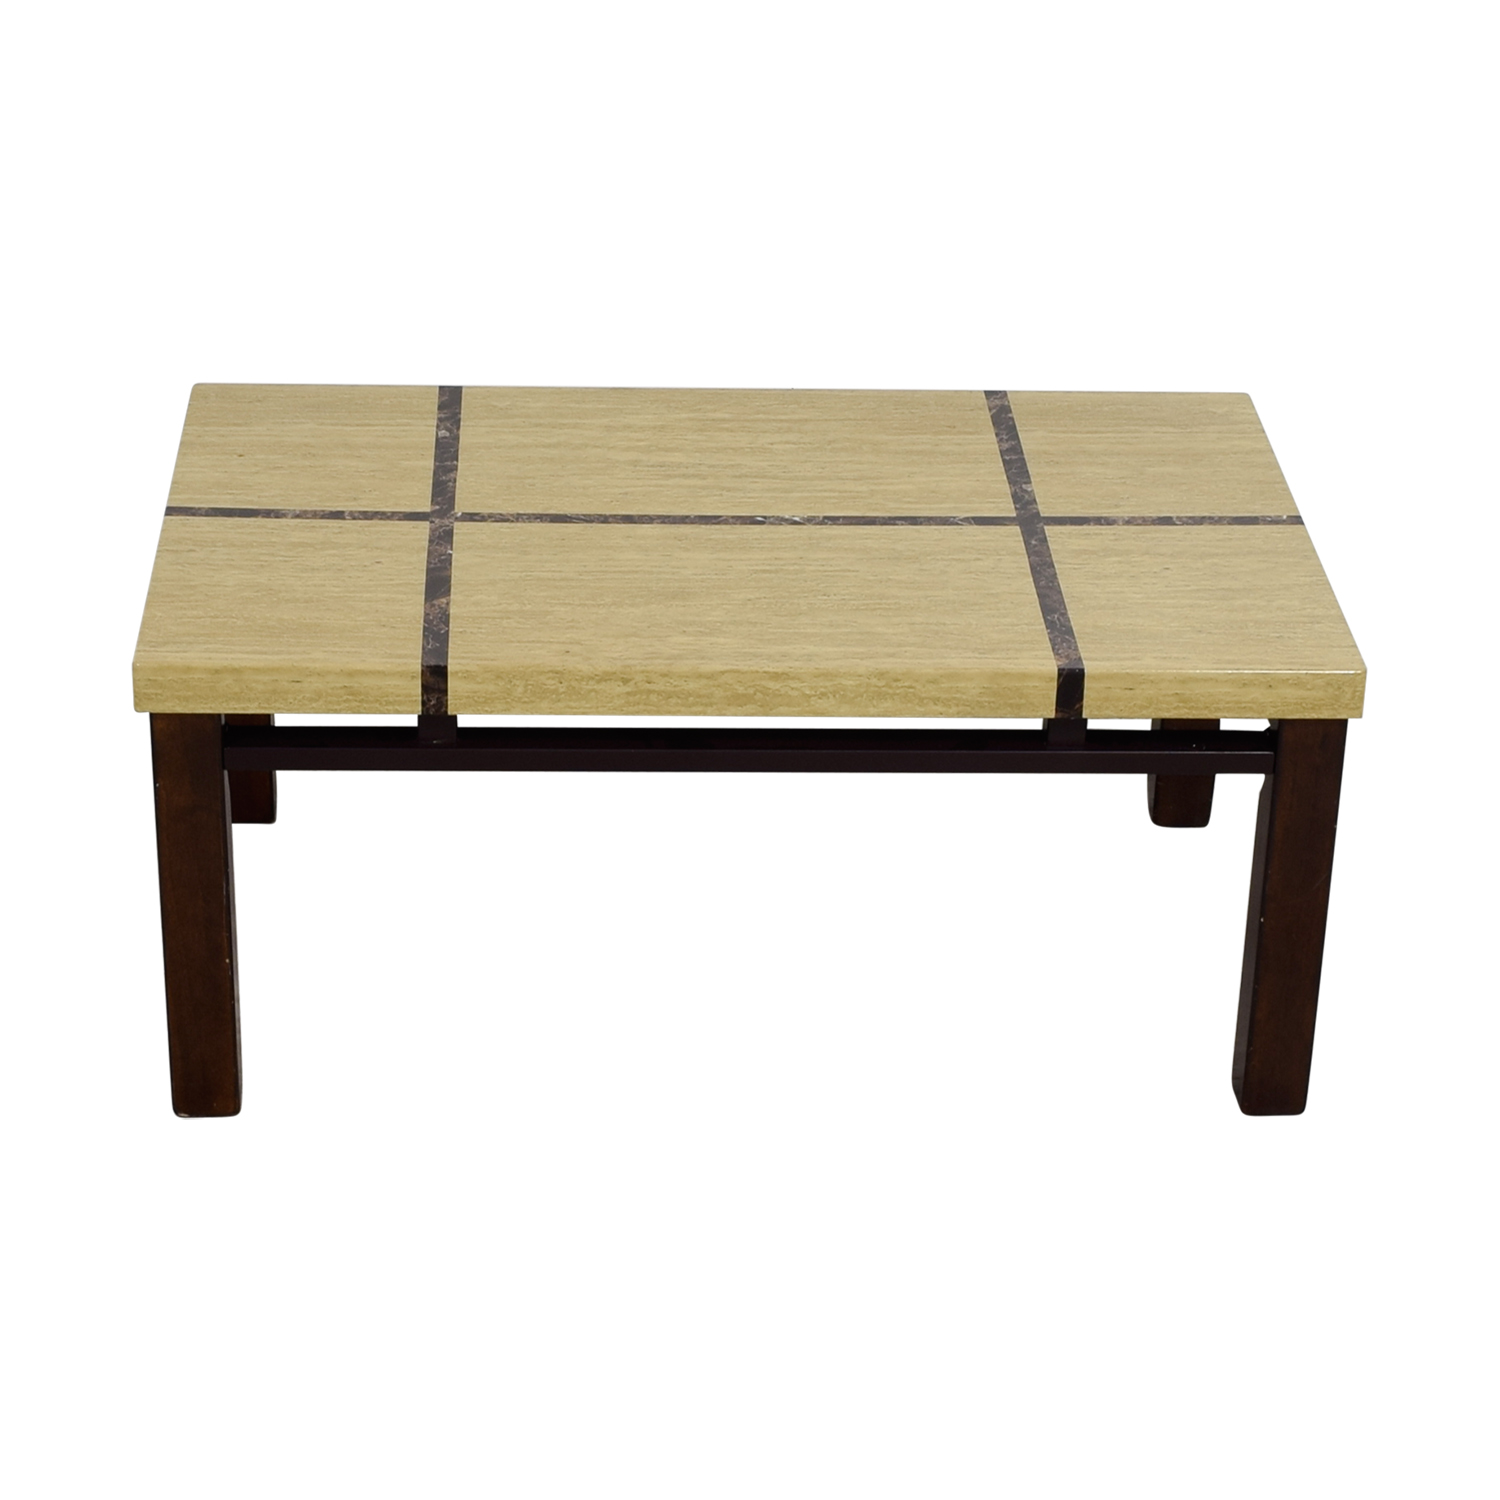 Natural and Dark Wood Coffee Table used